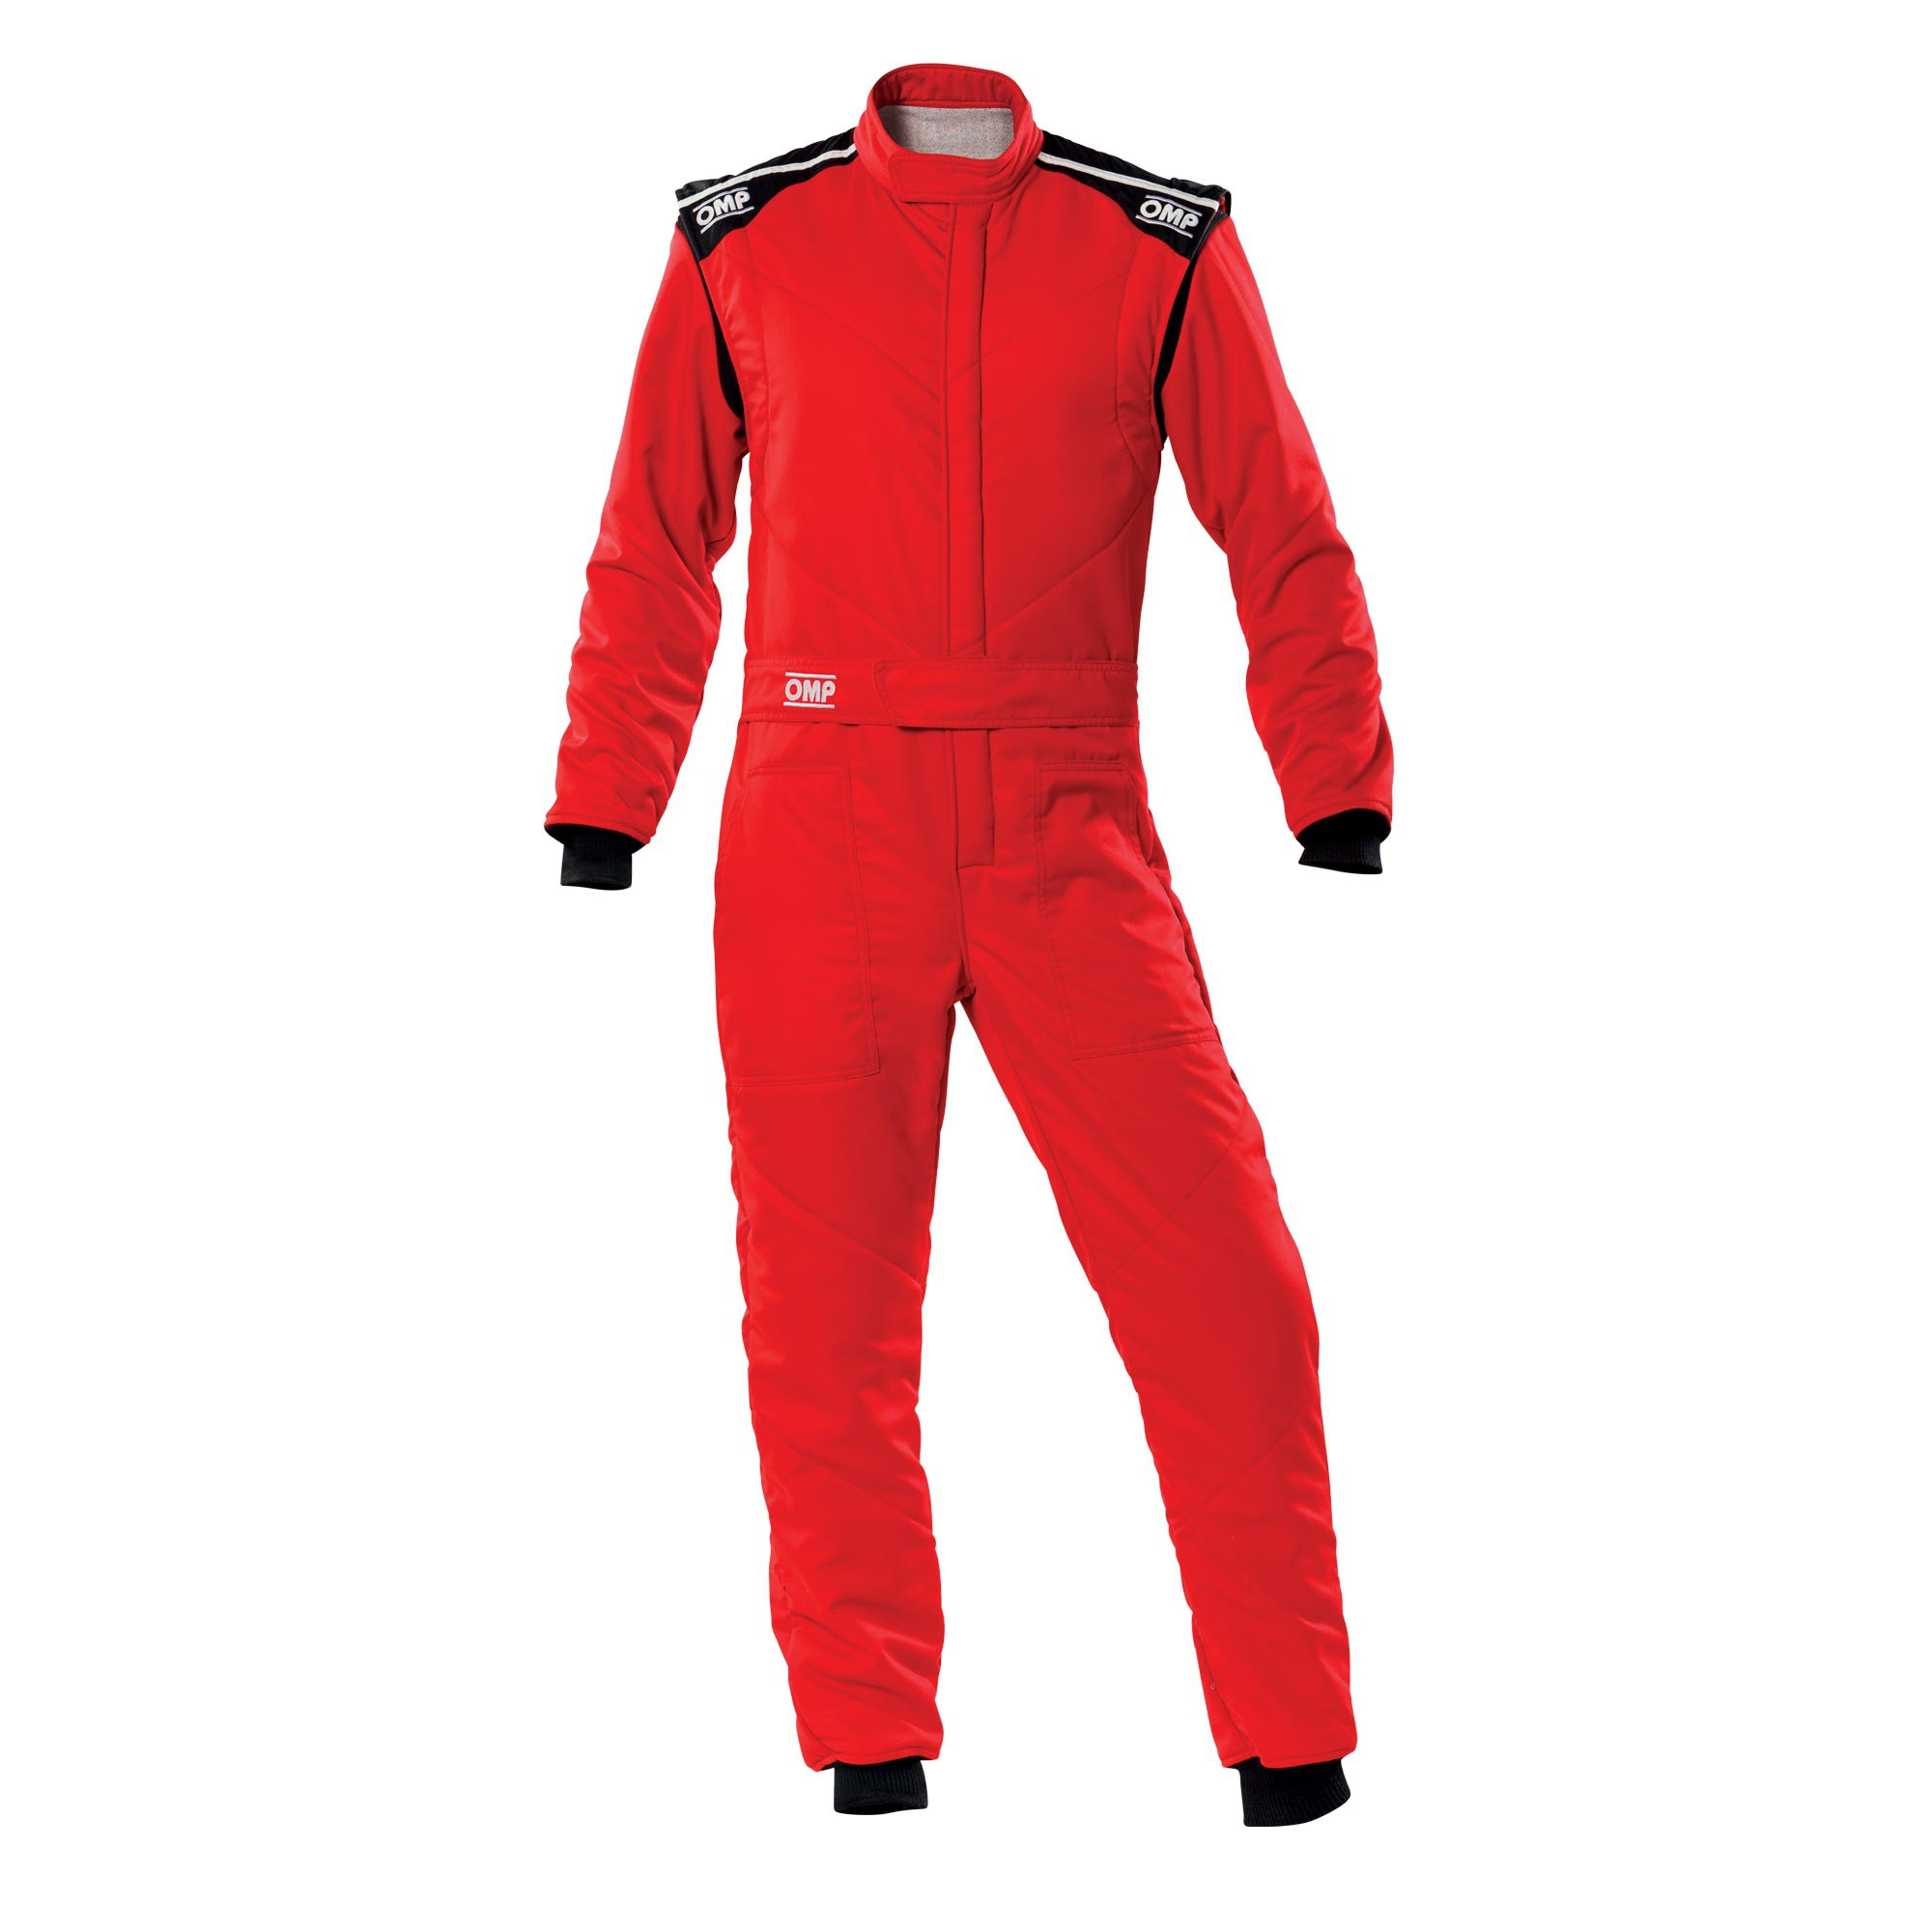 FIRST-S OVERALL RED SIZE 44 FIA 8856-2018